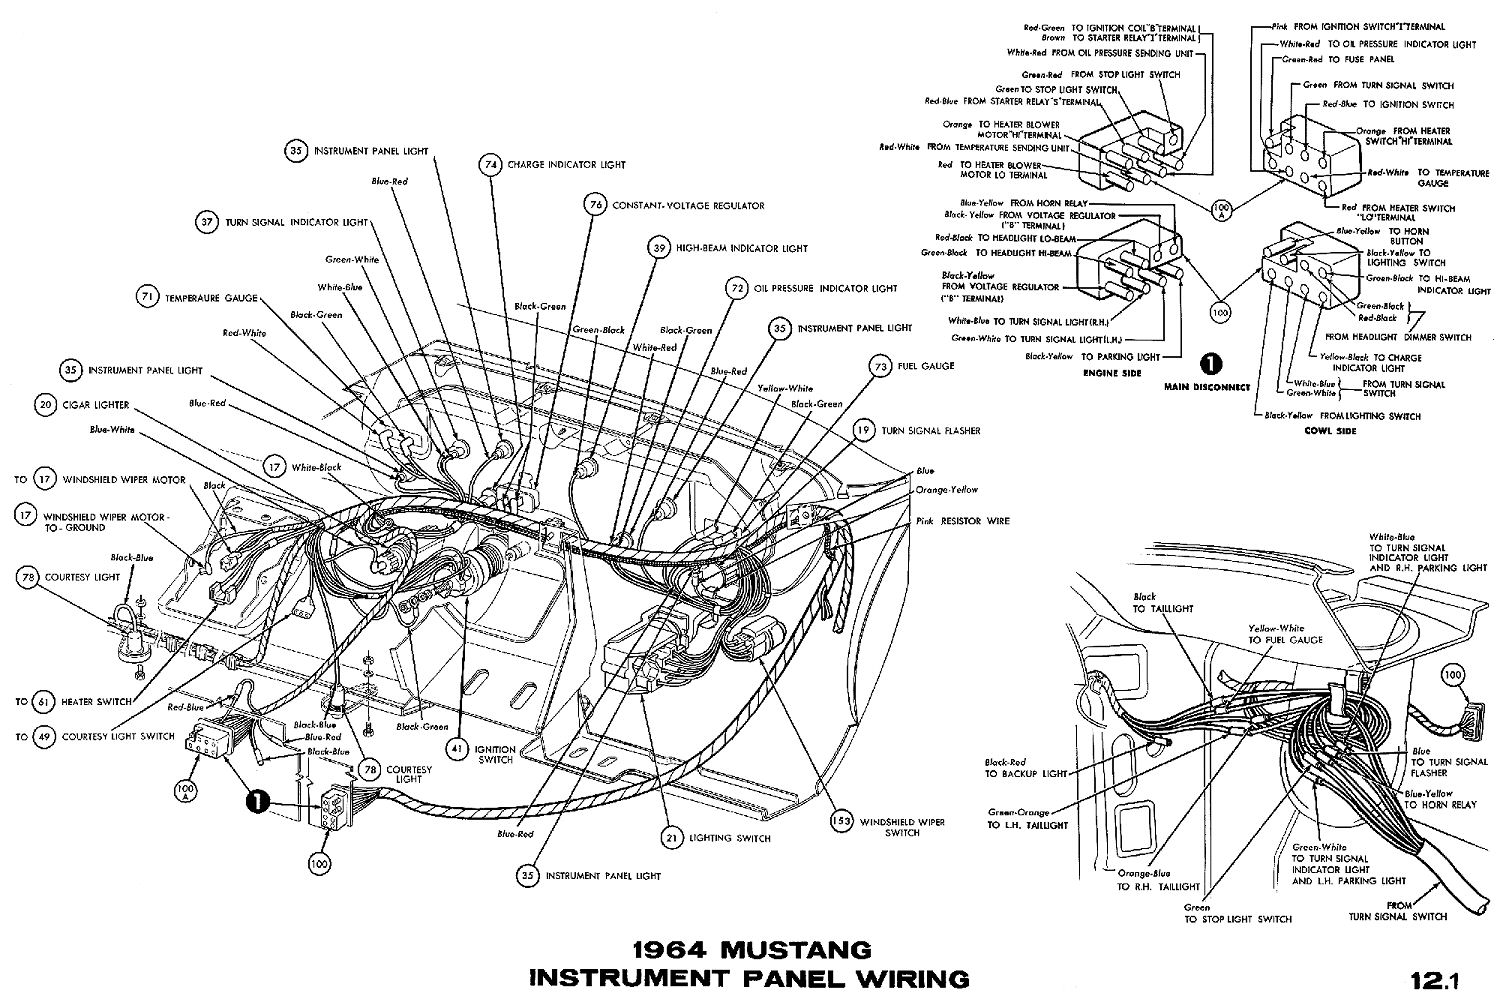 1964 Mustang Wiring Diagrams on 68 chevelle wiring diagram